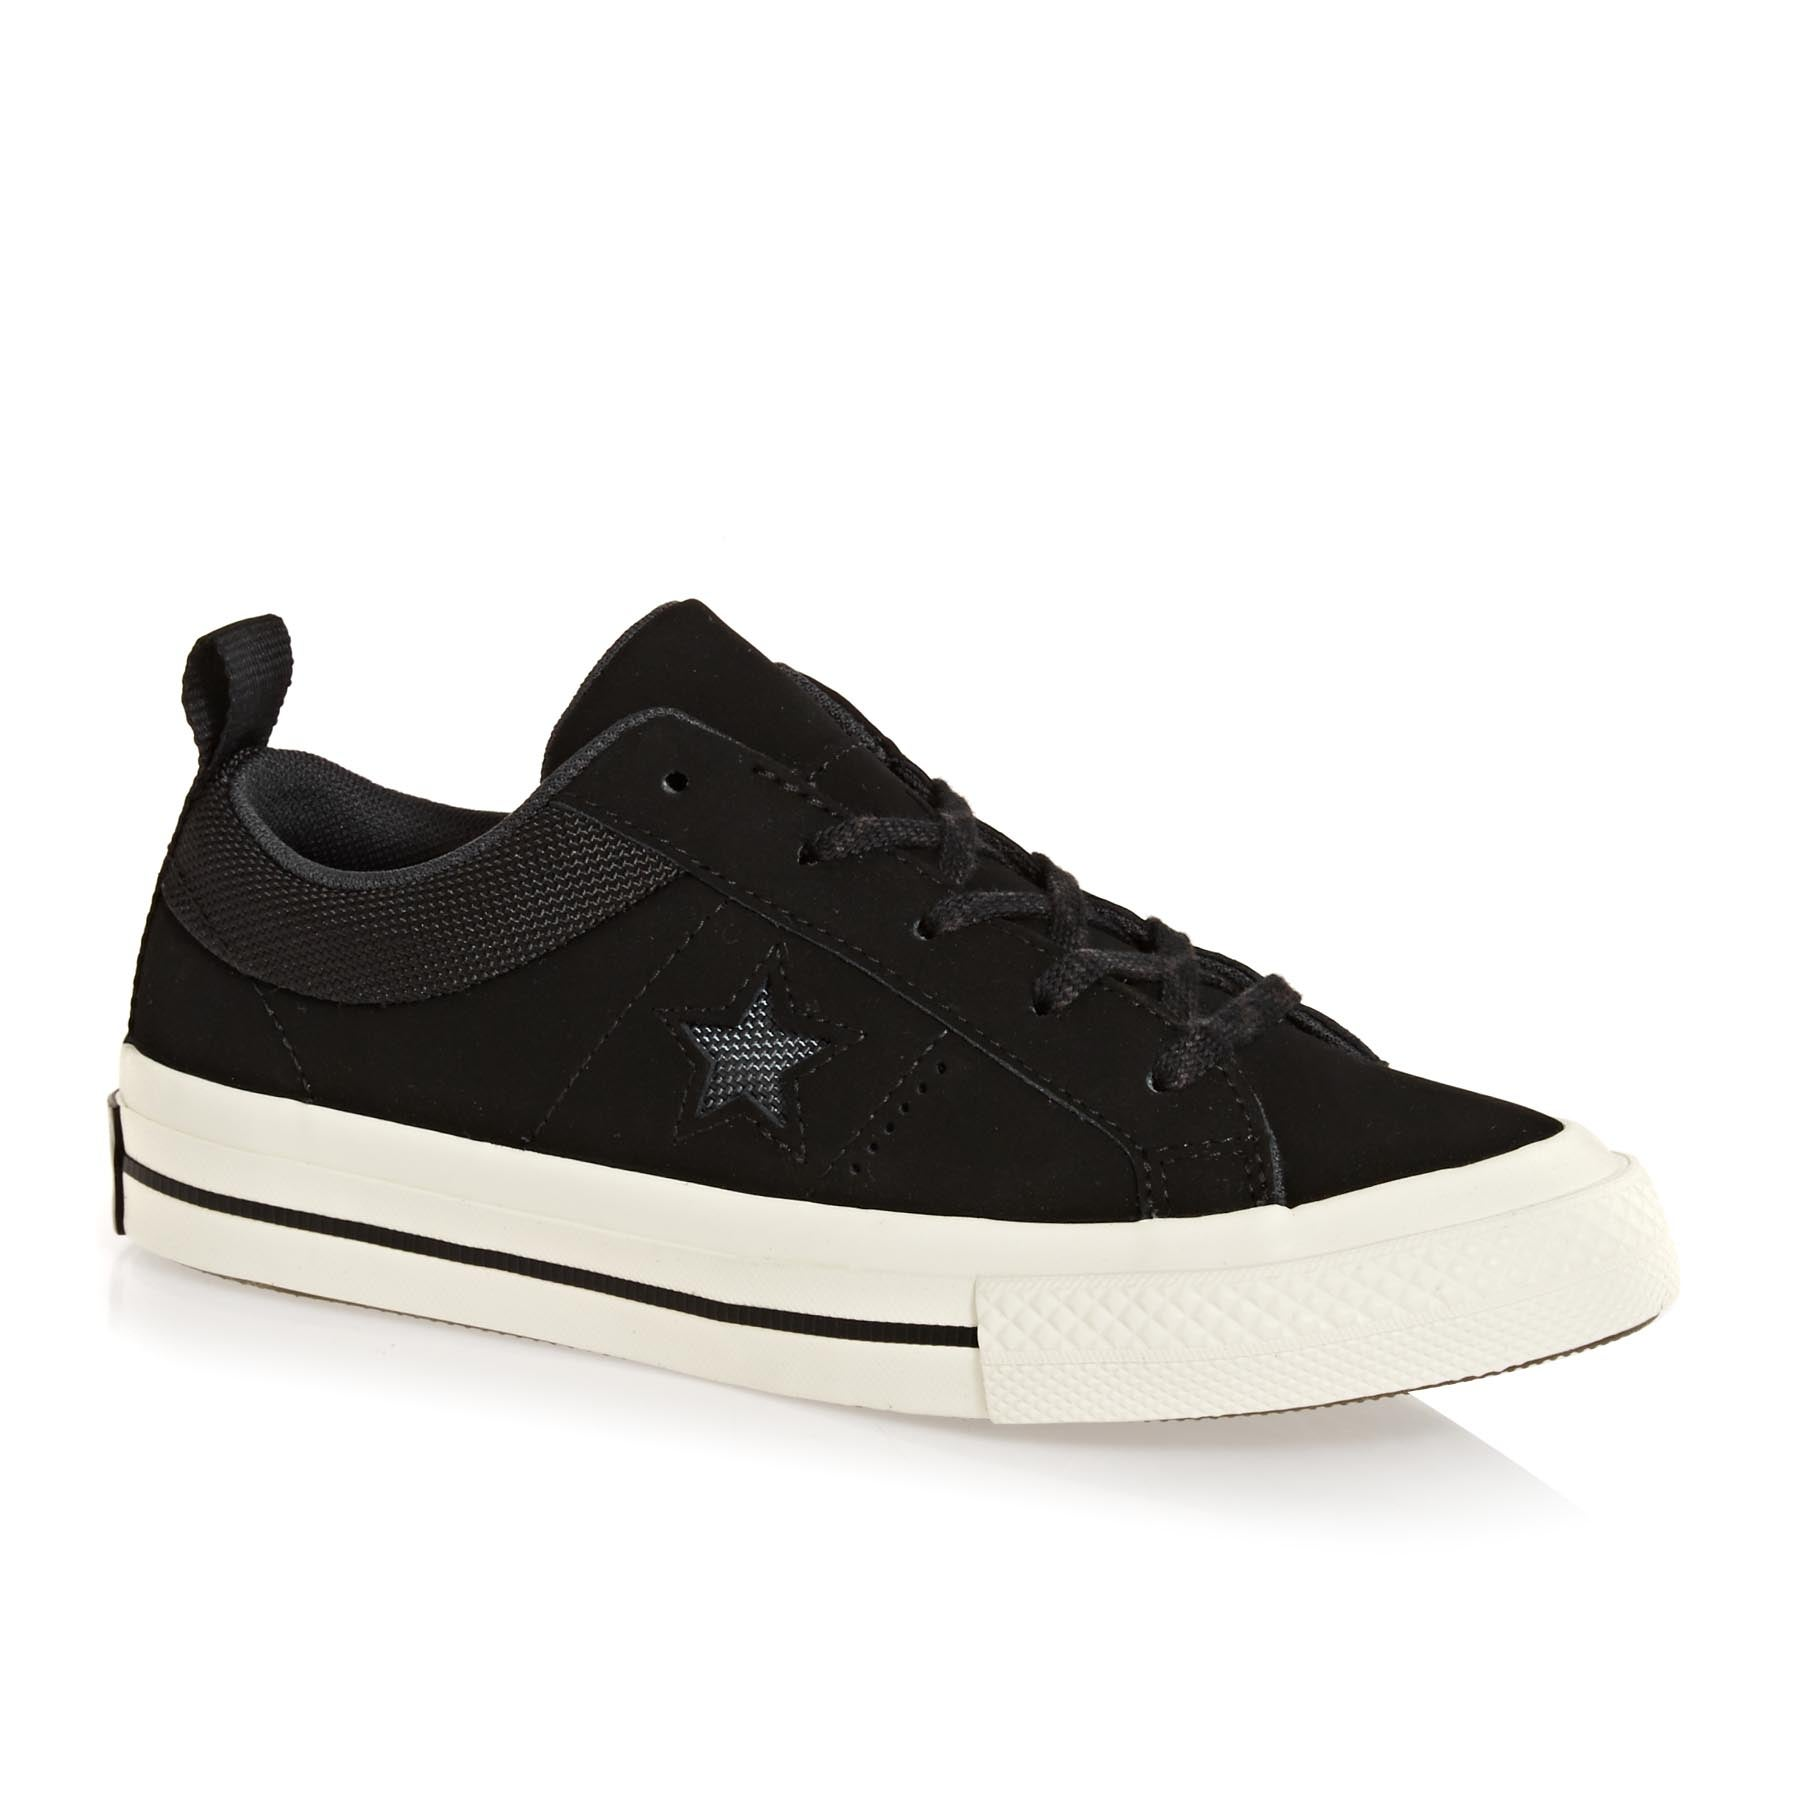 Converse One Star Ox Kids Shoes - Black Almost Black Egret